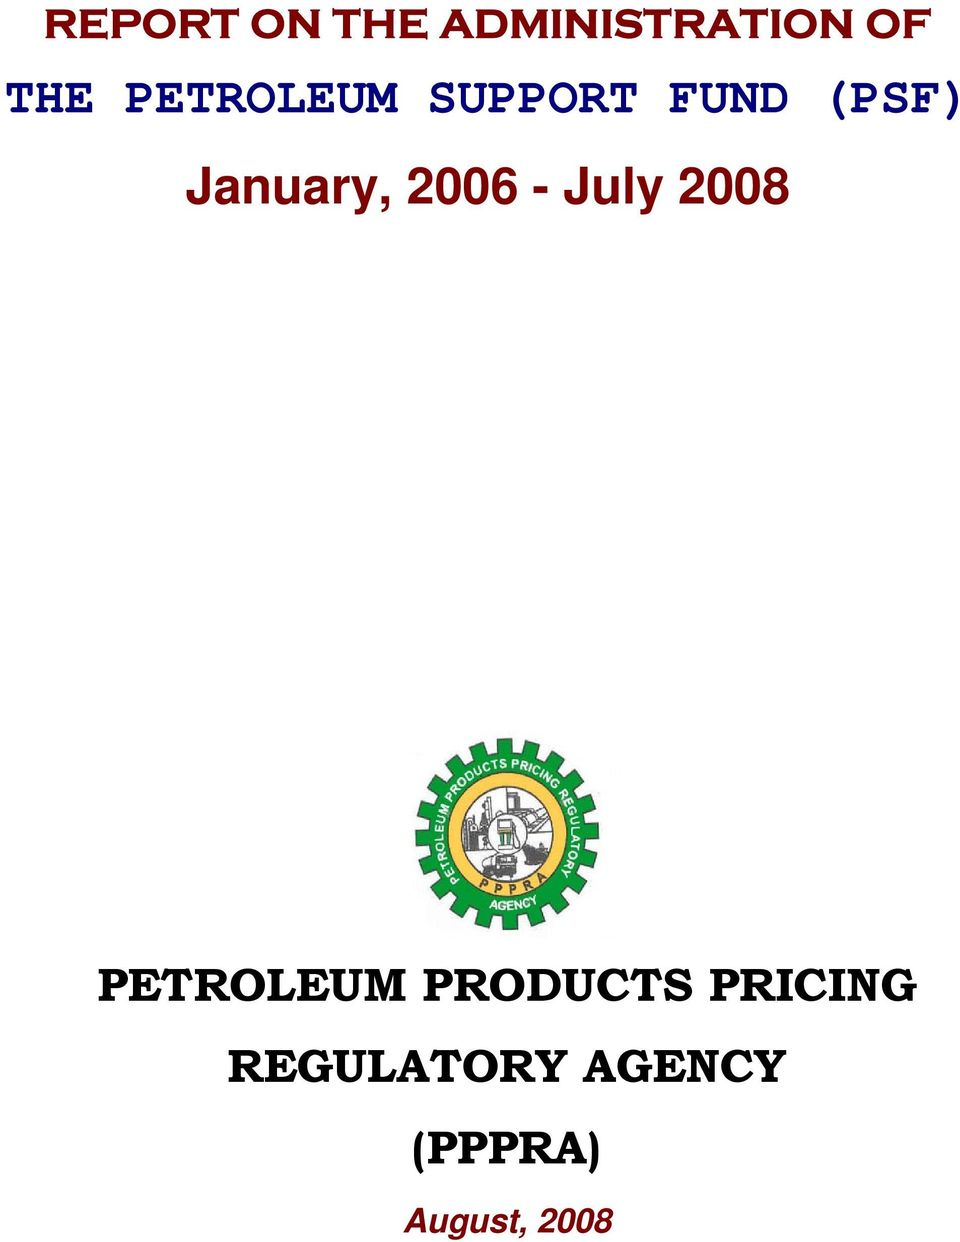 2006 - July 2008 PETROLEUM PRODUCTS